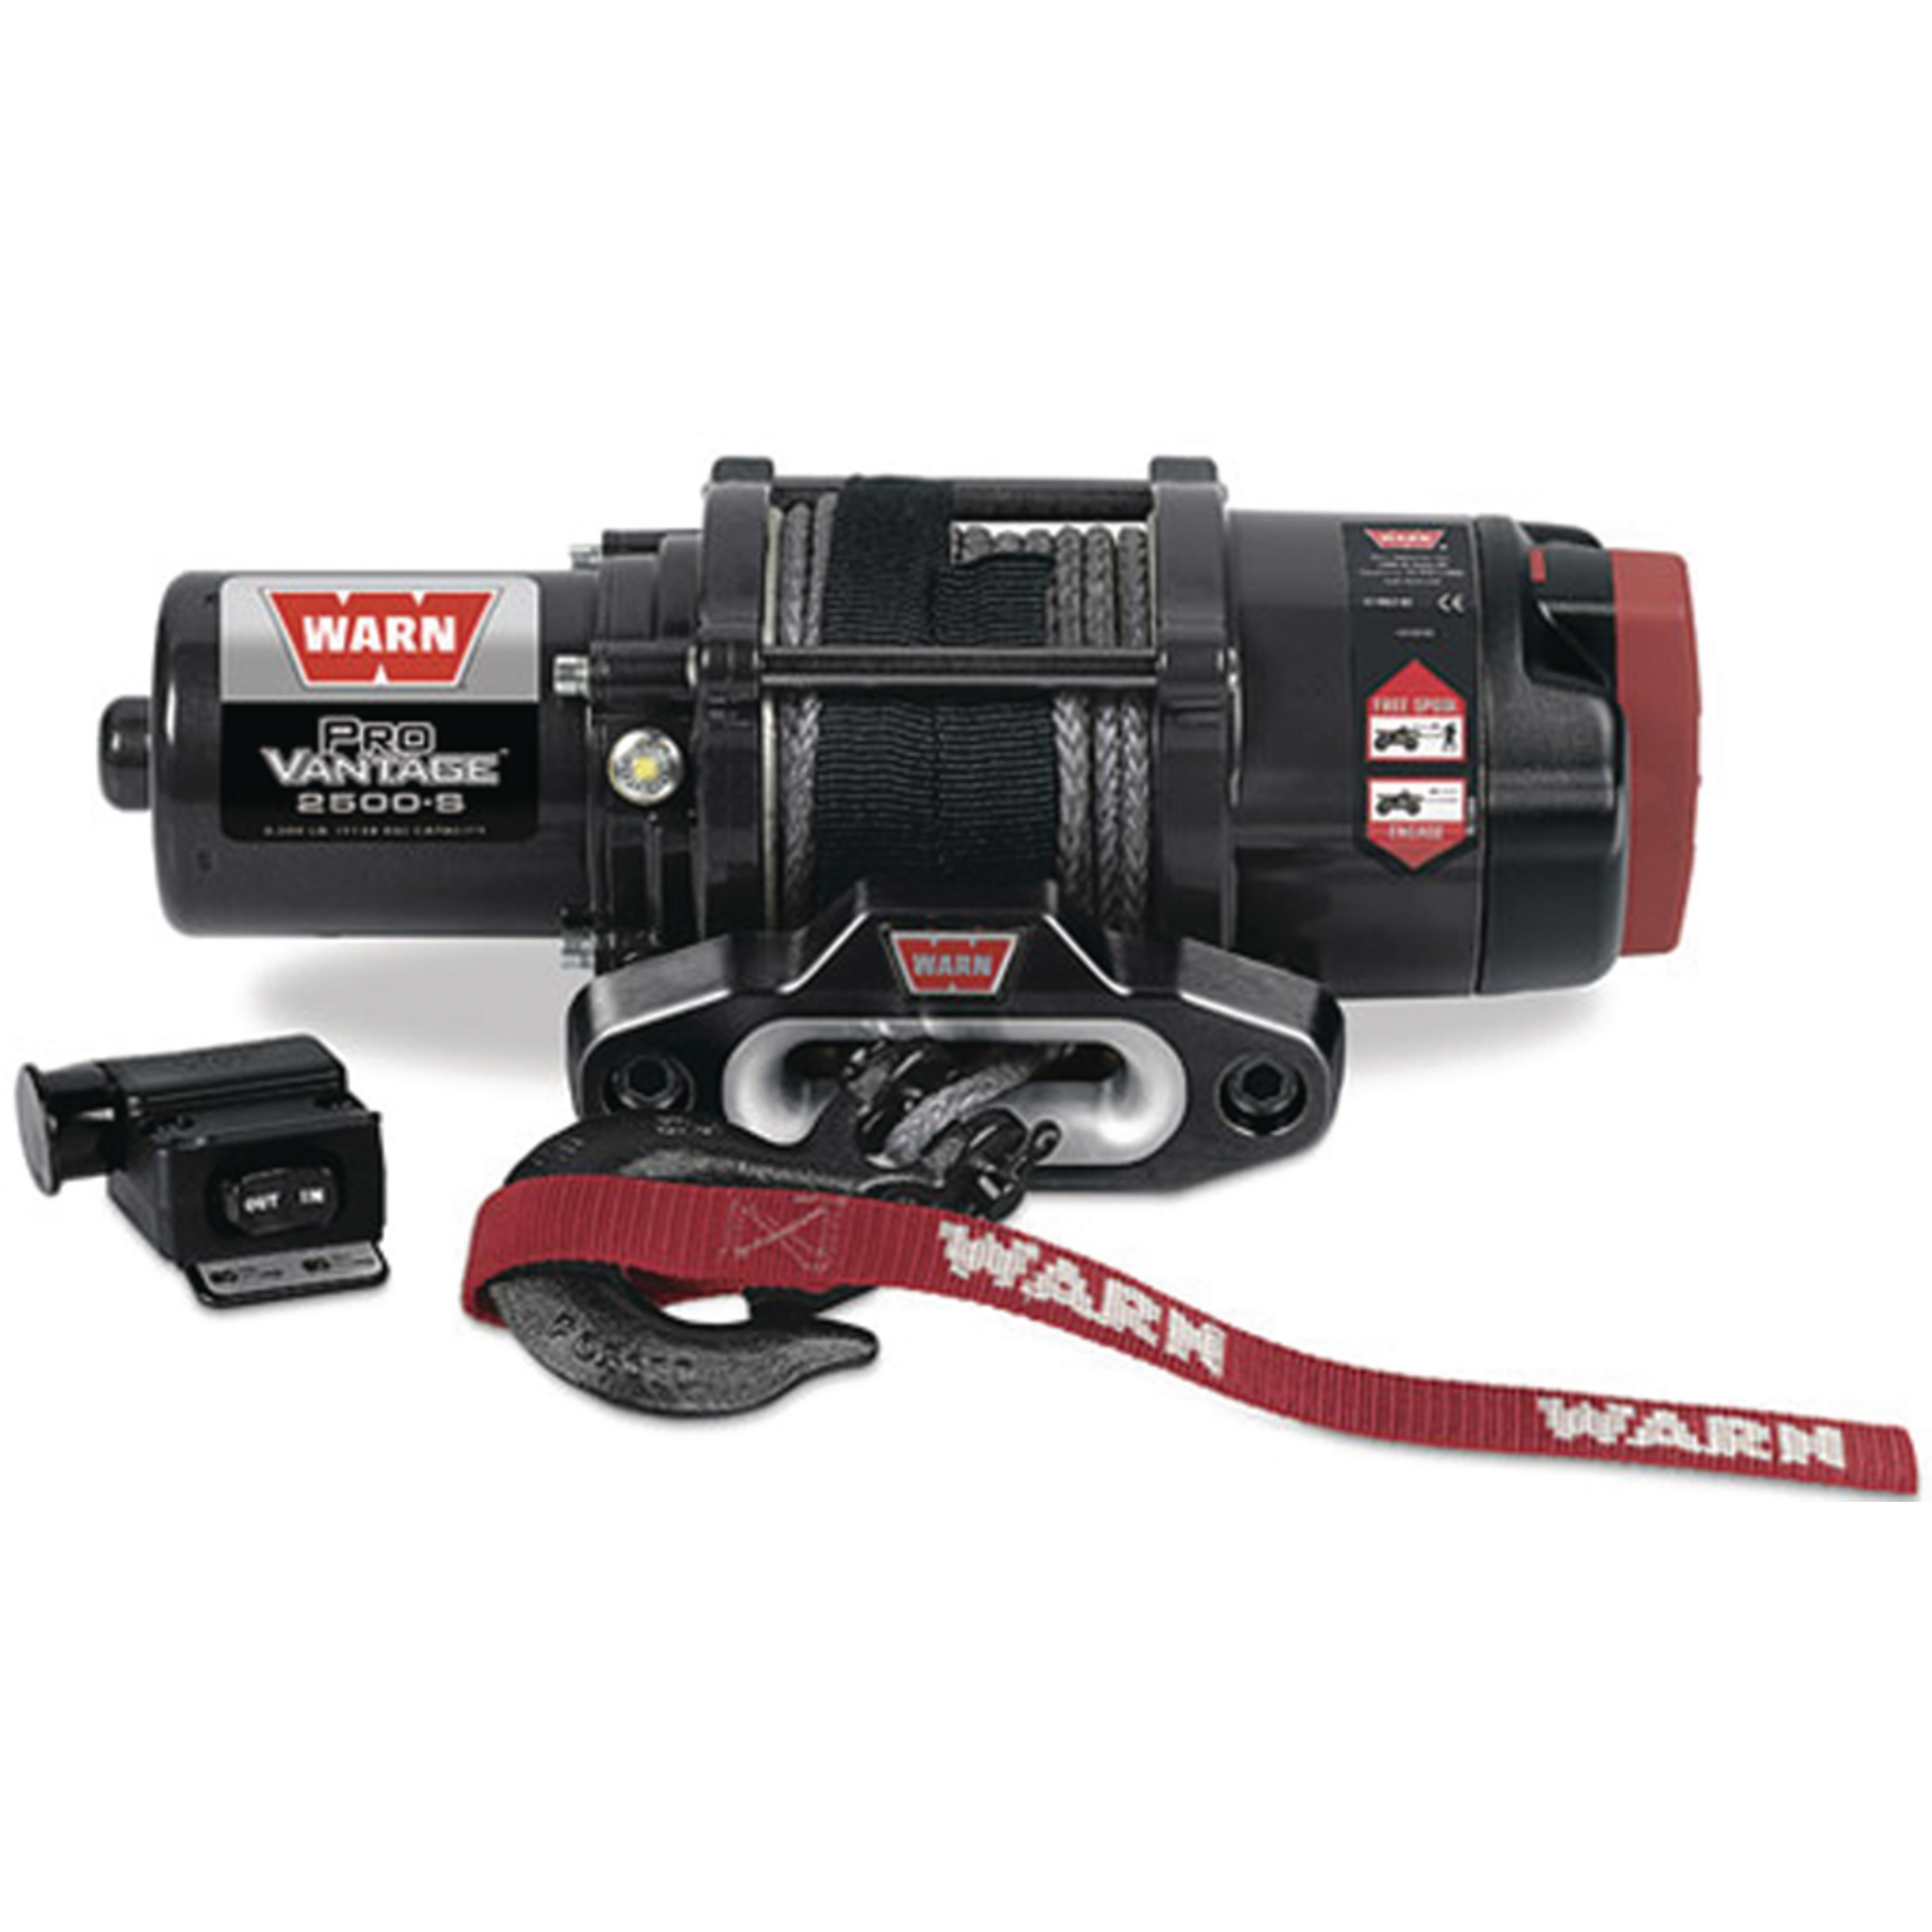 "Warn 90251 ProVantage 2500 lb Capacity RV Winch - 50' x 3/16"" Cable"